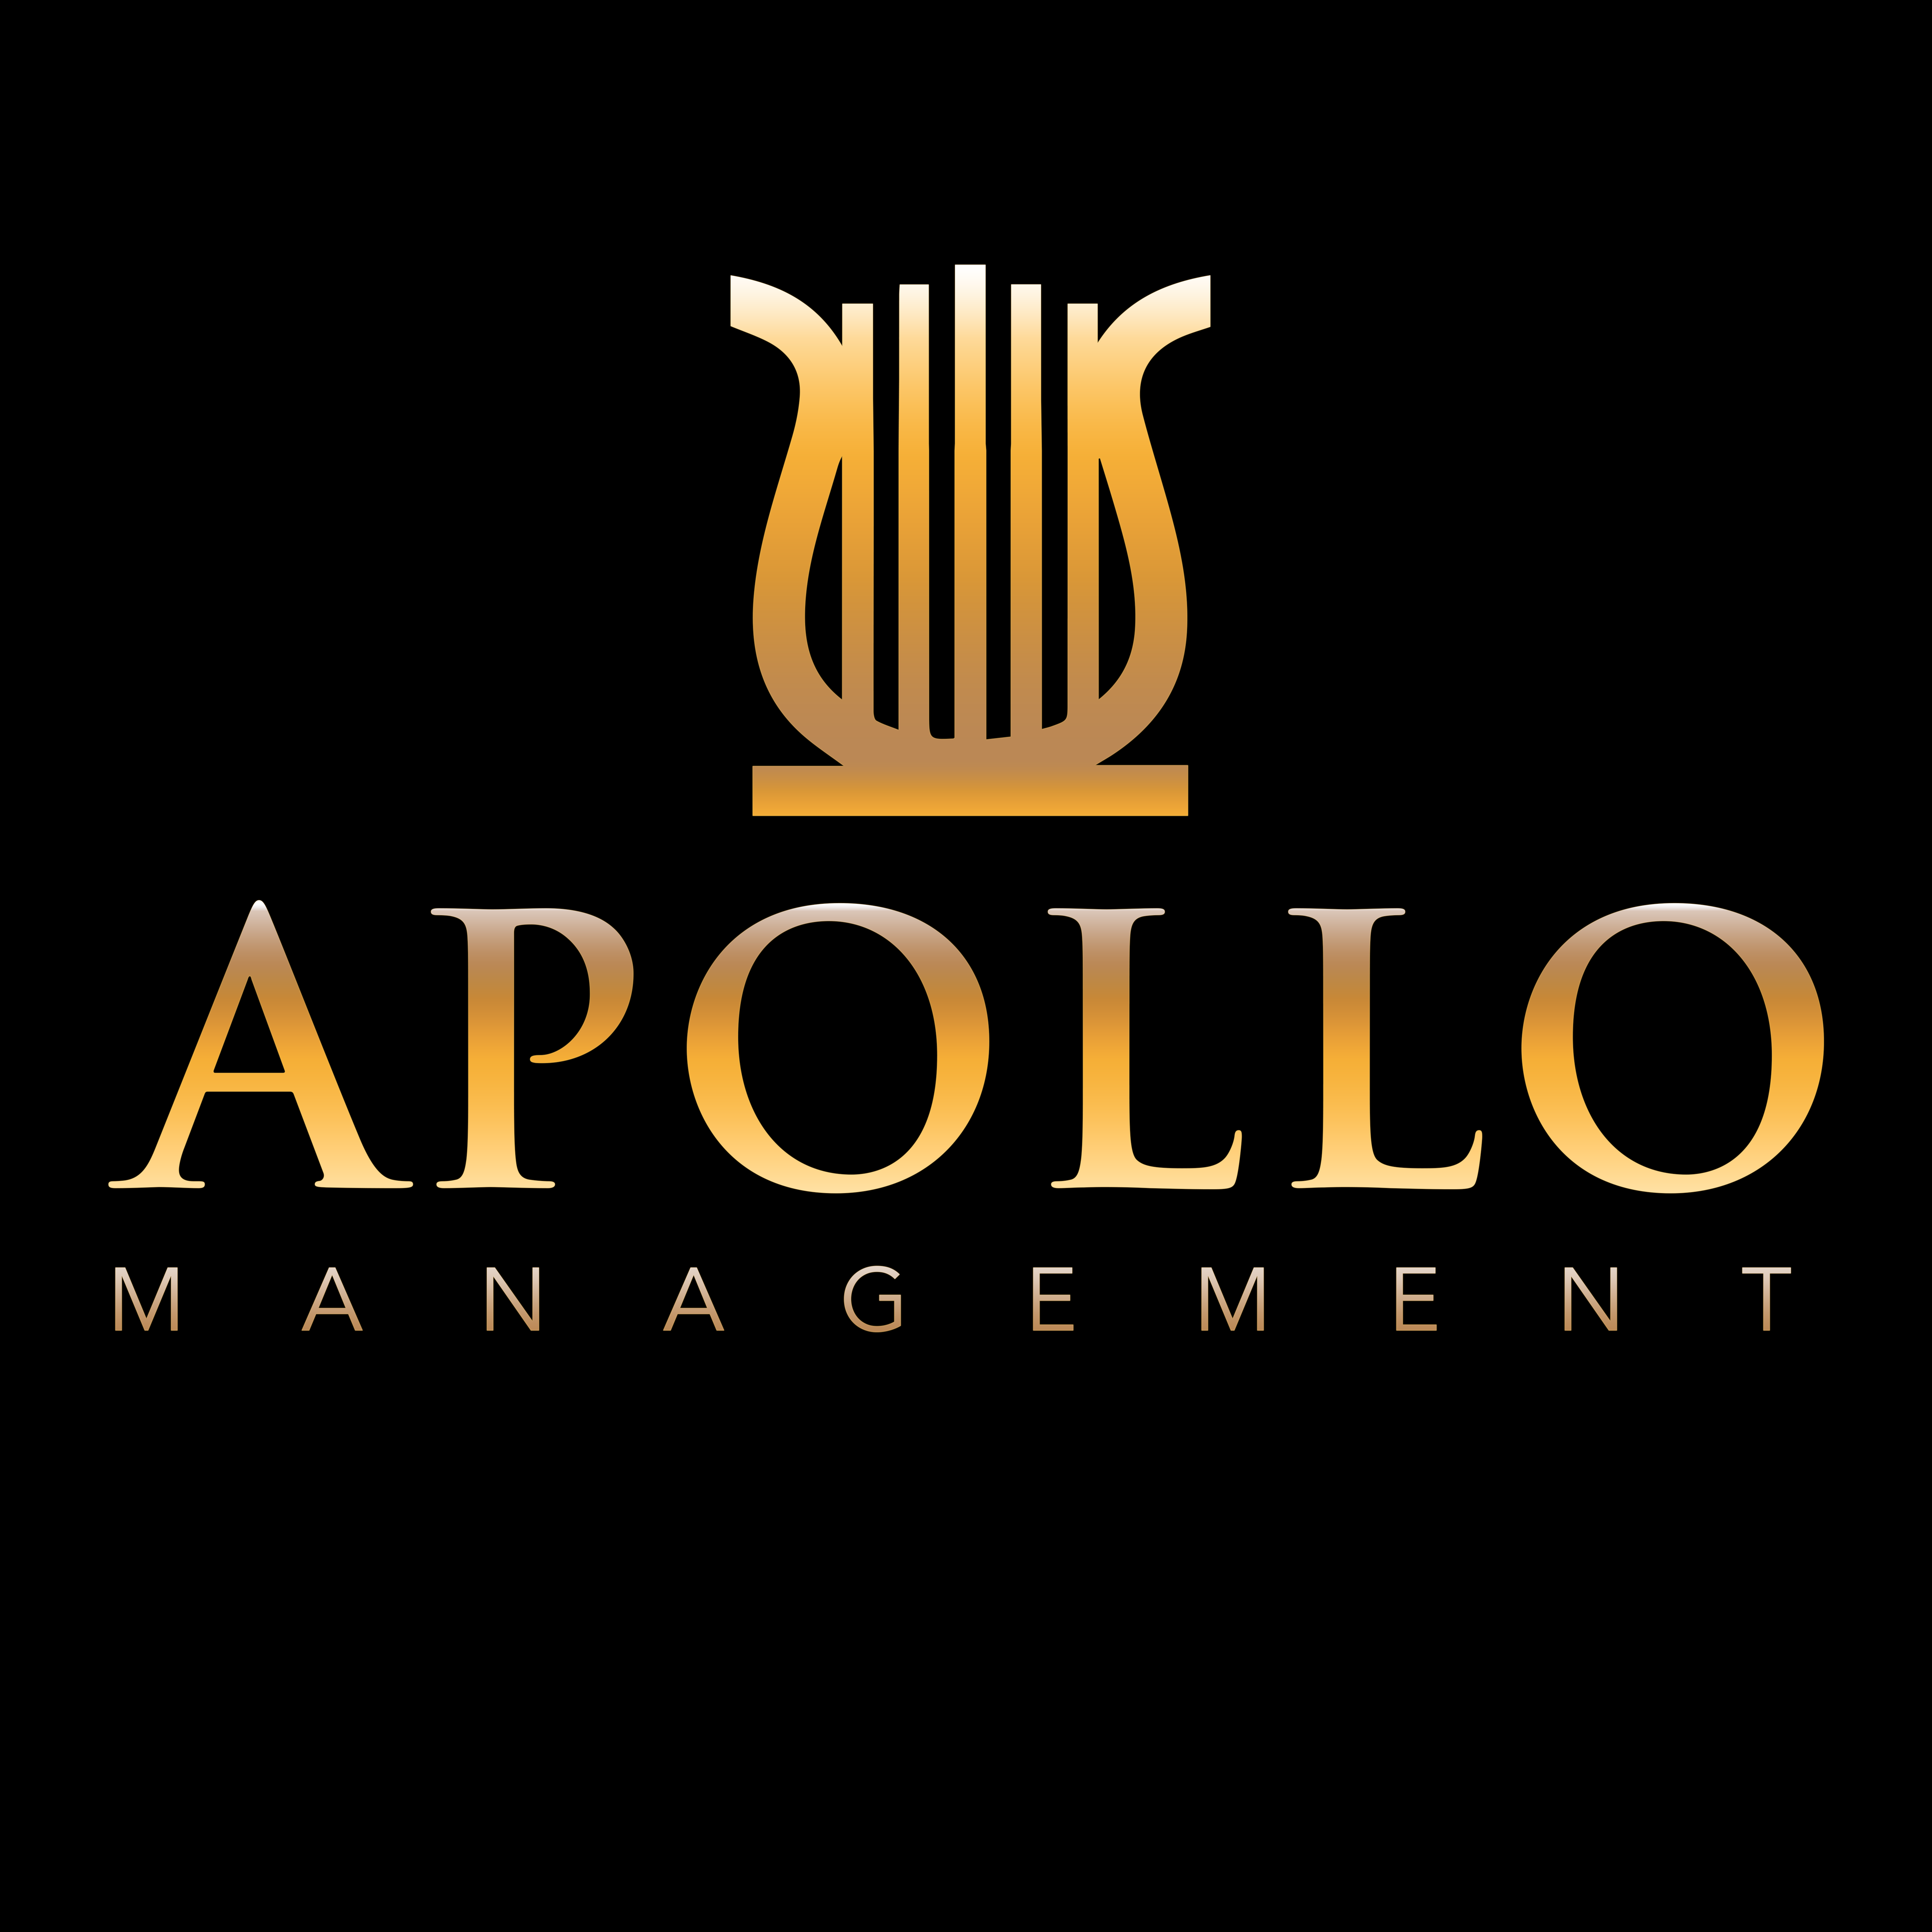 apollo management llc - Artist Management Jobs